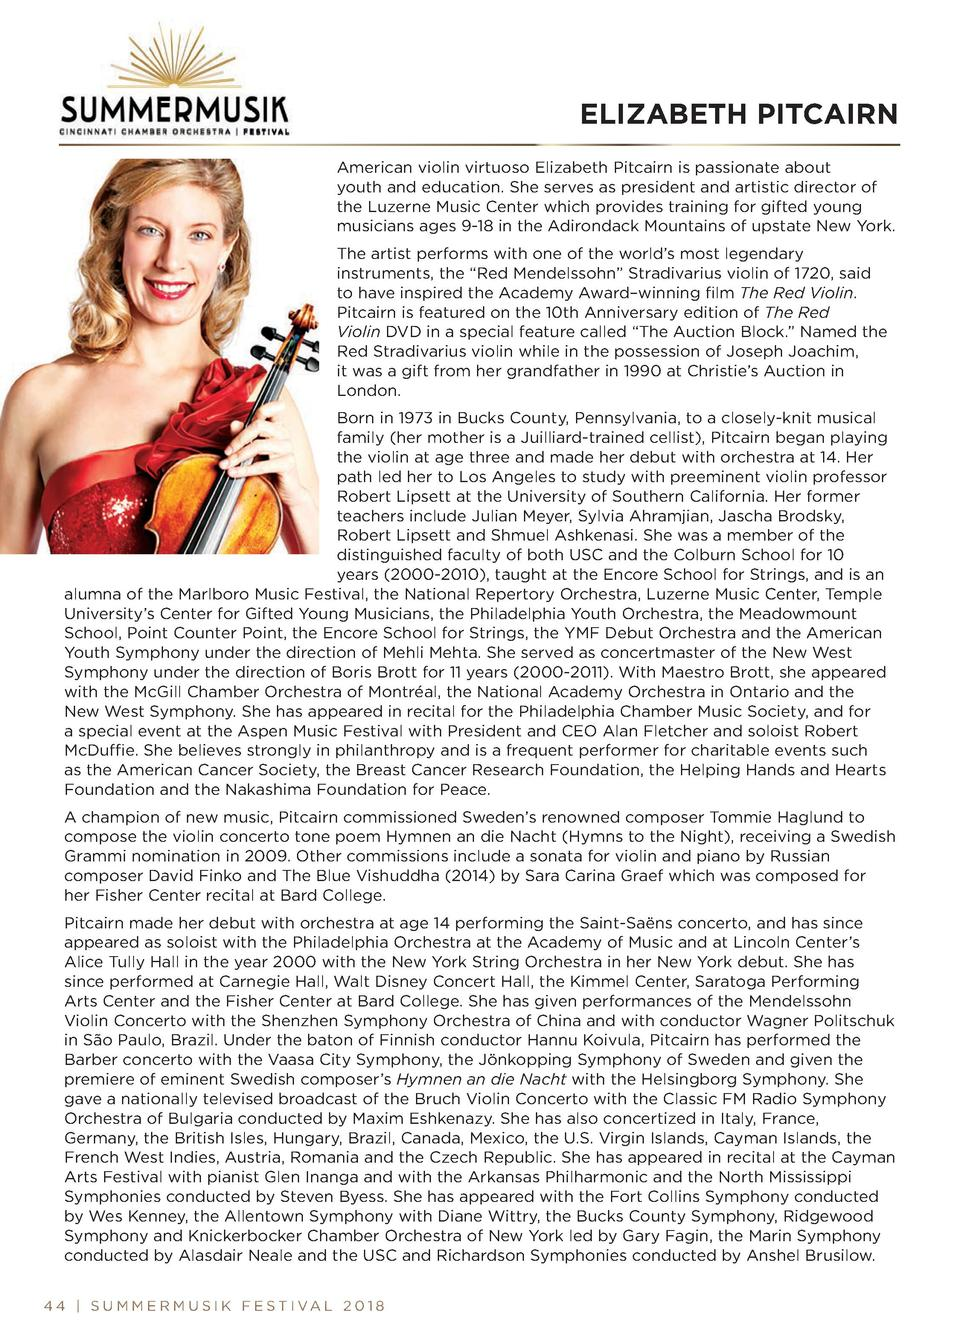 ELIZABETH PITCAIRN American violin virtuoso Elizabeth Pitcairn is passionate about youth and education. She serves as pres...